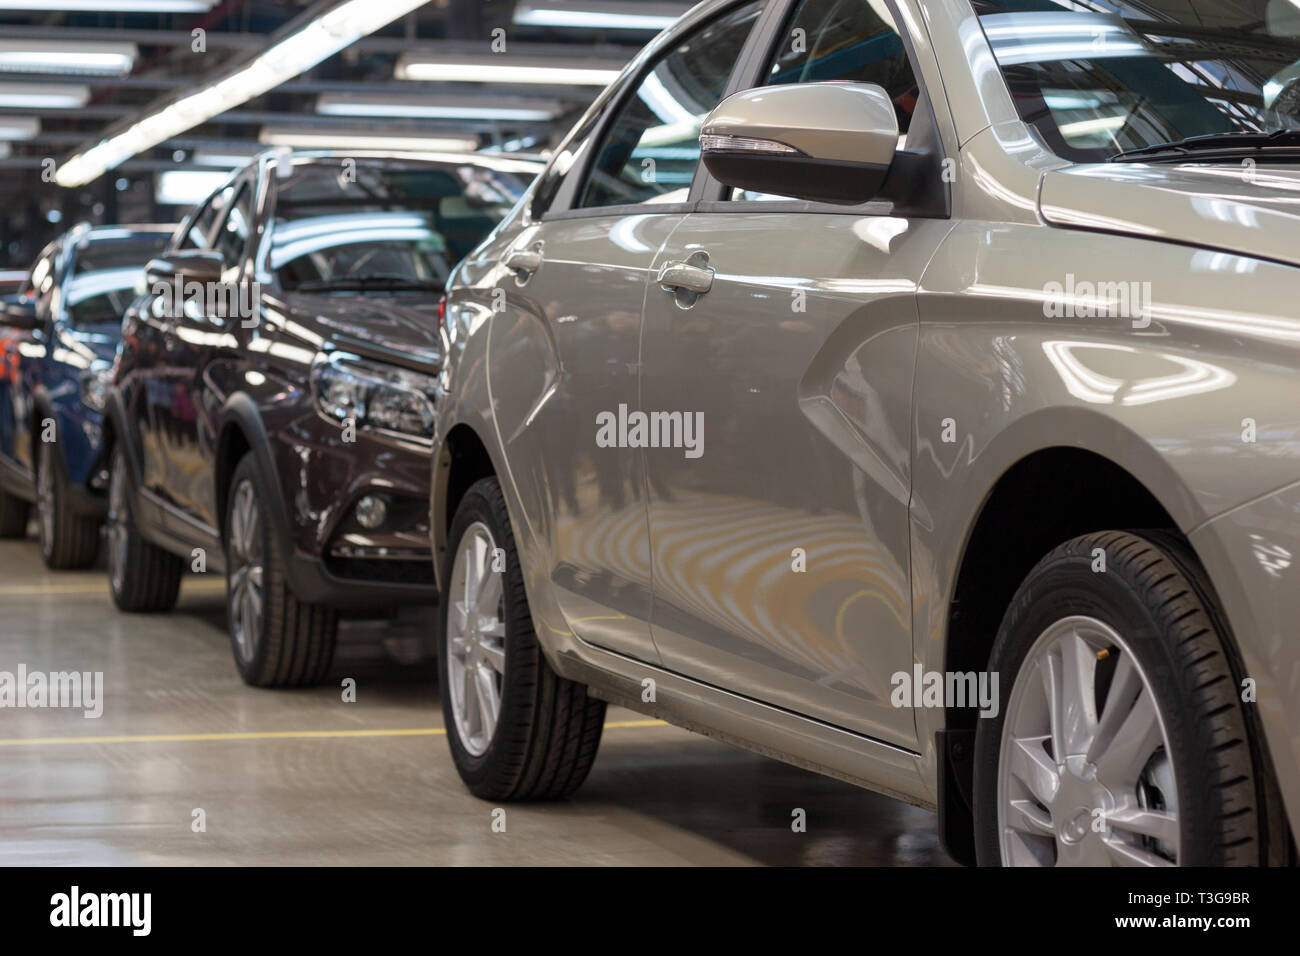 Russia, Izhevsk - December 15, 2018: LADA Automobile Plant Izhevsk, part of the AVTOVAZ Group. New modern cars Lada ready for sale. Modern transportat - Stock Image